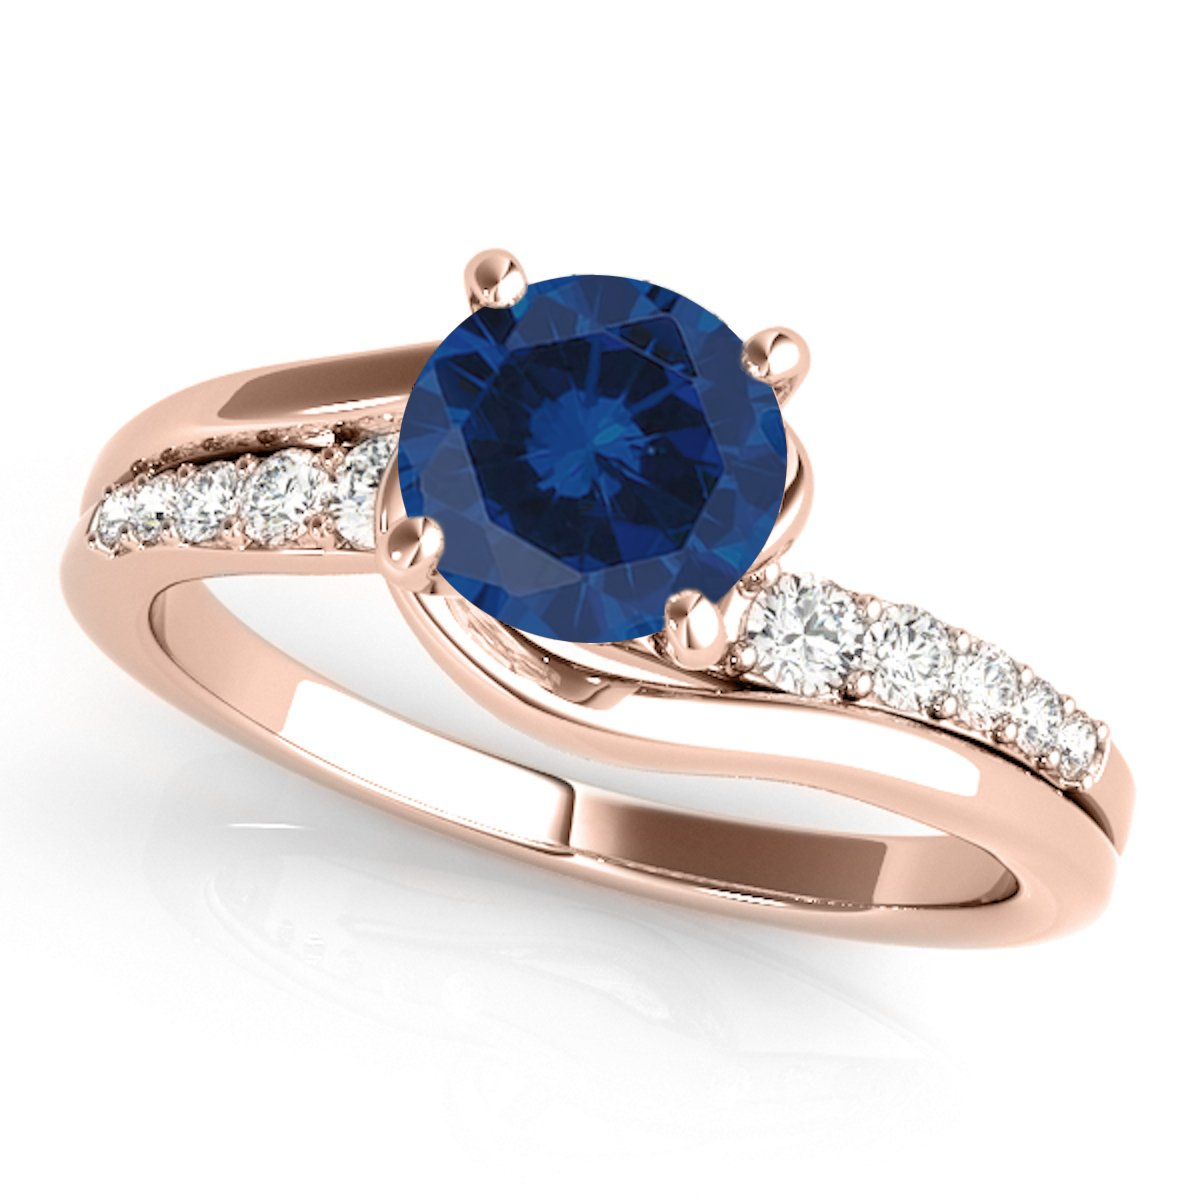 1.15 Ct. Halo Sapphire And Diamond Engagement Ring Crafted In 14k Solid Rose Gold